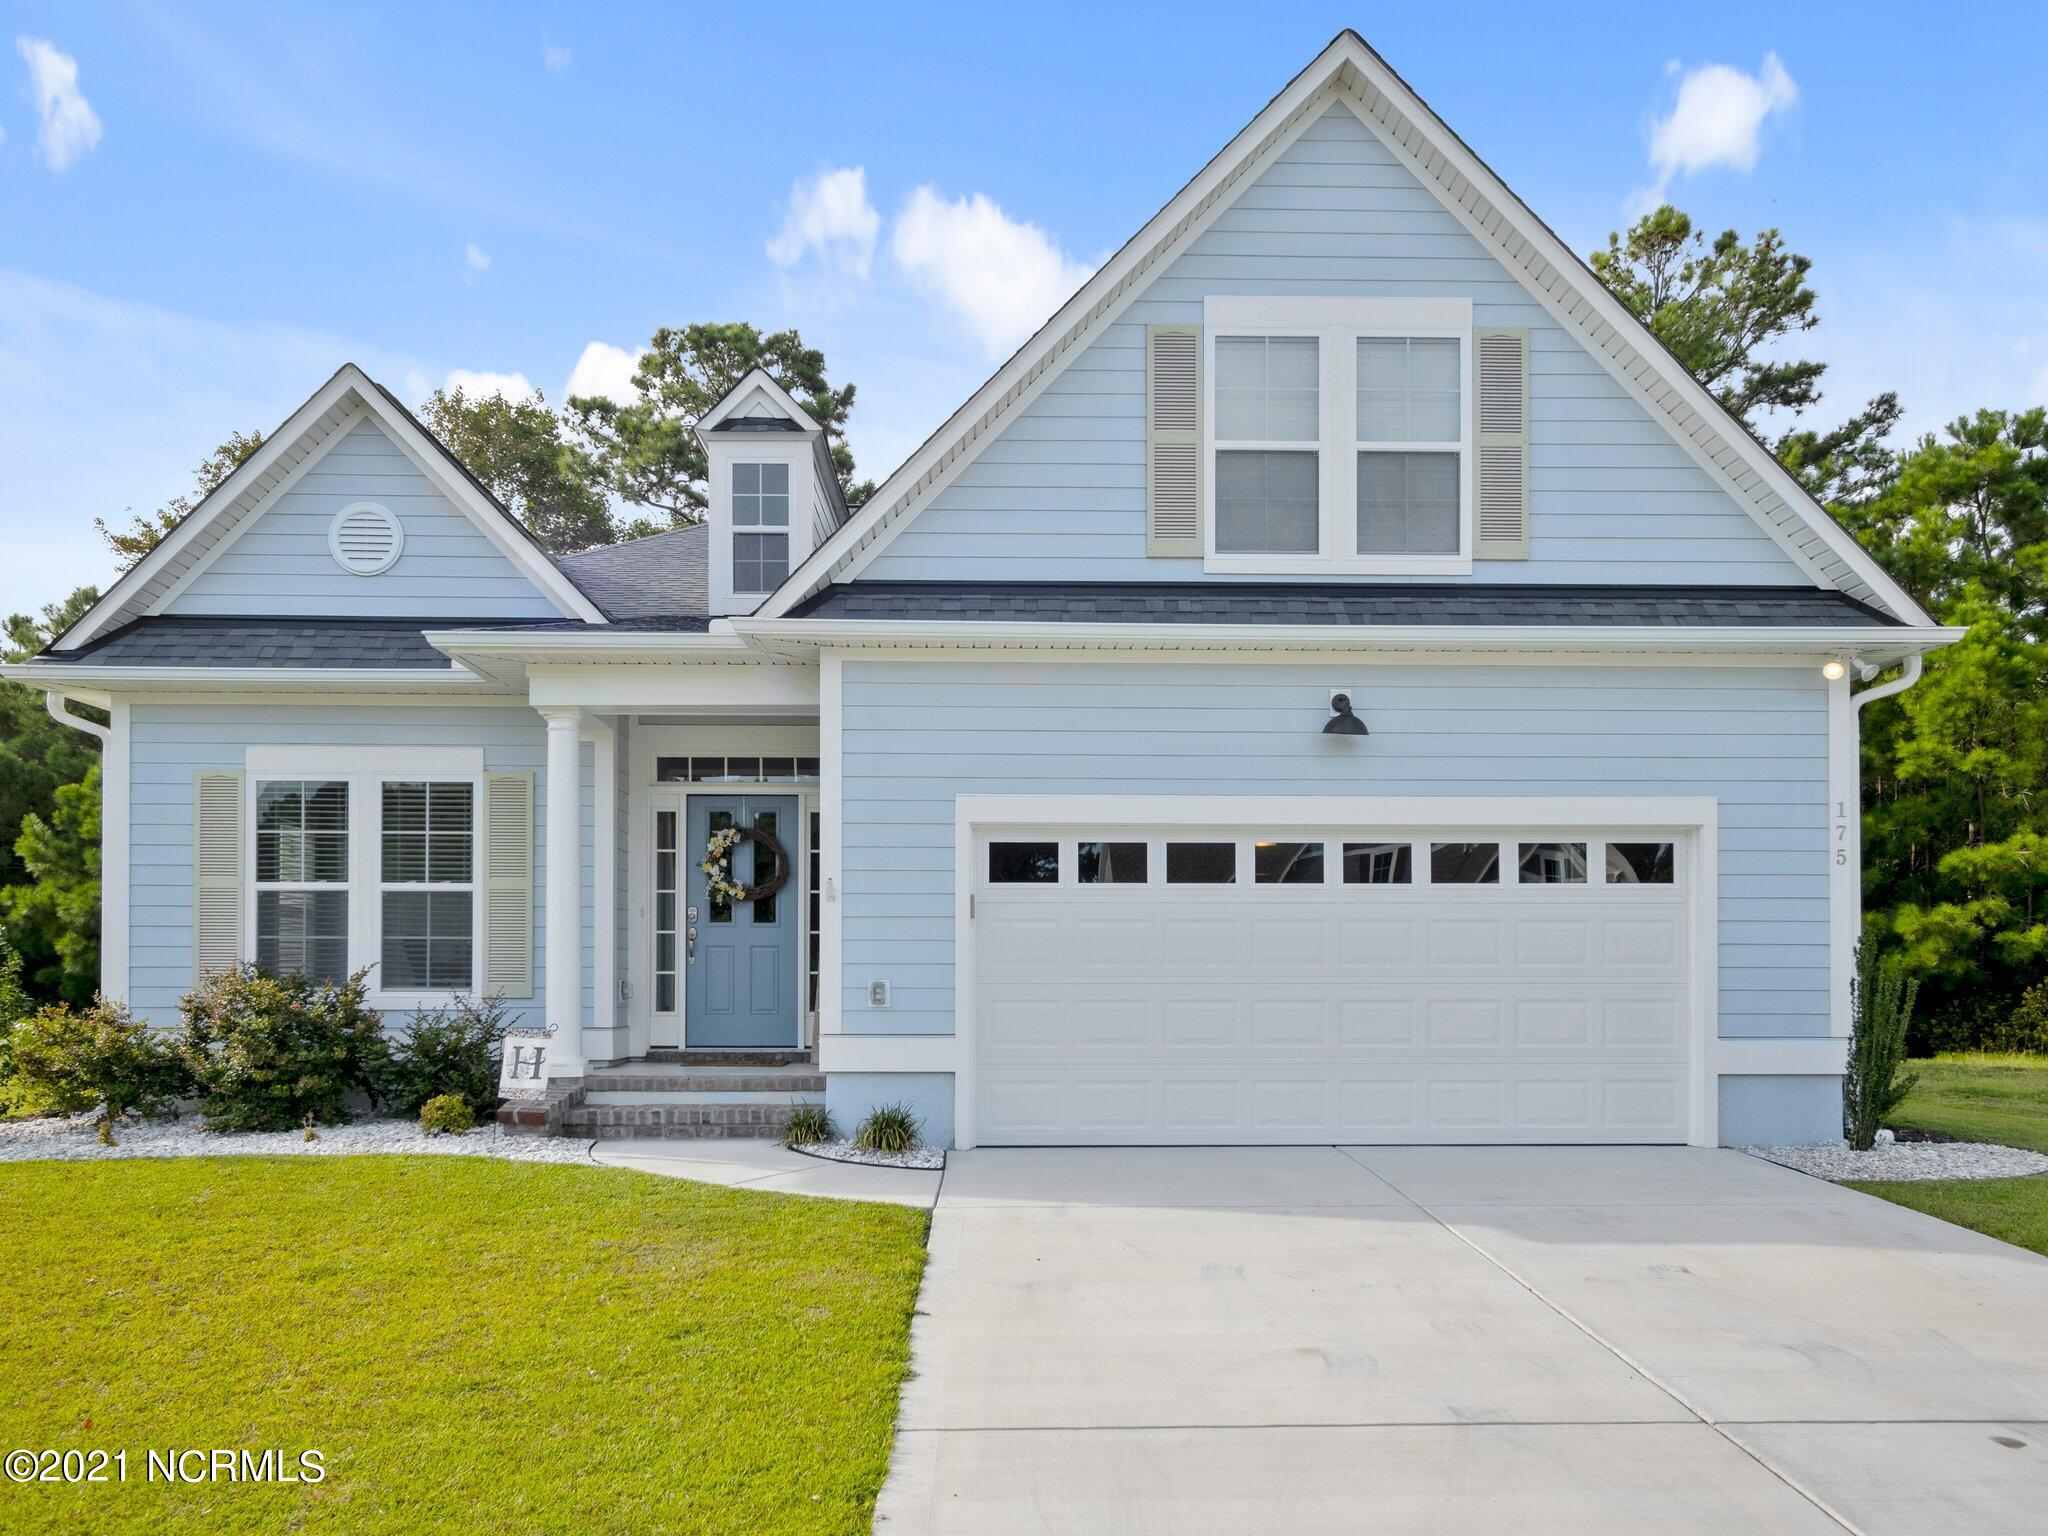 Welcome to the best gated community in eastern NC, Summerhouse on Everett Bay.   This property is definitely an opportunity, as it is a charming 1.5 story home with fantastic, unique views of a .45 acre lot in an incredible neighborhood with jaw dropping amenities.  This very spacious, open concept floor plan has trey ceilings and plenty of natural lighting.  The kitchen boasts plentiful cabinets and a large island, perfect for meal preparation and entertaining. The living space opens into a fabulous, four season sunroom and living in coastal NC means year round enjoyment.  The main level primary suite is spacious and features a large bathroom with double vanities and a large, walk-in closet with customized shelving.  Two other bedrooms, a second bathroom, foyer, mudroom, and the laundry room complete the main level.  Upstairs is the bonus room with the third full bathroom.  Also, upstairs is a large, walk-in storage space.  The back of the home features an unbelievable view of a wooded, private back yard.  The amenities are another must-see, which includes an enormous pool that wraps around three sides of the clubhouse, day docks with pier on the ICW, boat ramp, tennis courts, play ground, walking trails, numerous park areas, and a fitness center that incorporates the pool's bath house.  The elegant clubhouse includes a billiard room, full kitchen, covered patio areas, and upper decking that overlooks the pool and Spicer Lake.  This home is conveniently located to the Topsail Island beaches, Wilmington, Jacksonville. Schedule an appointment, while this home is still available.